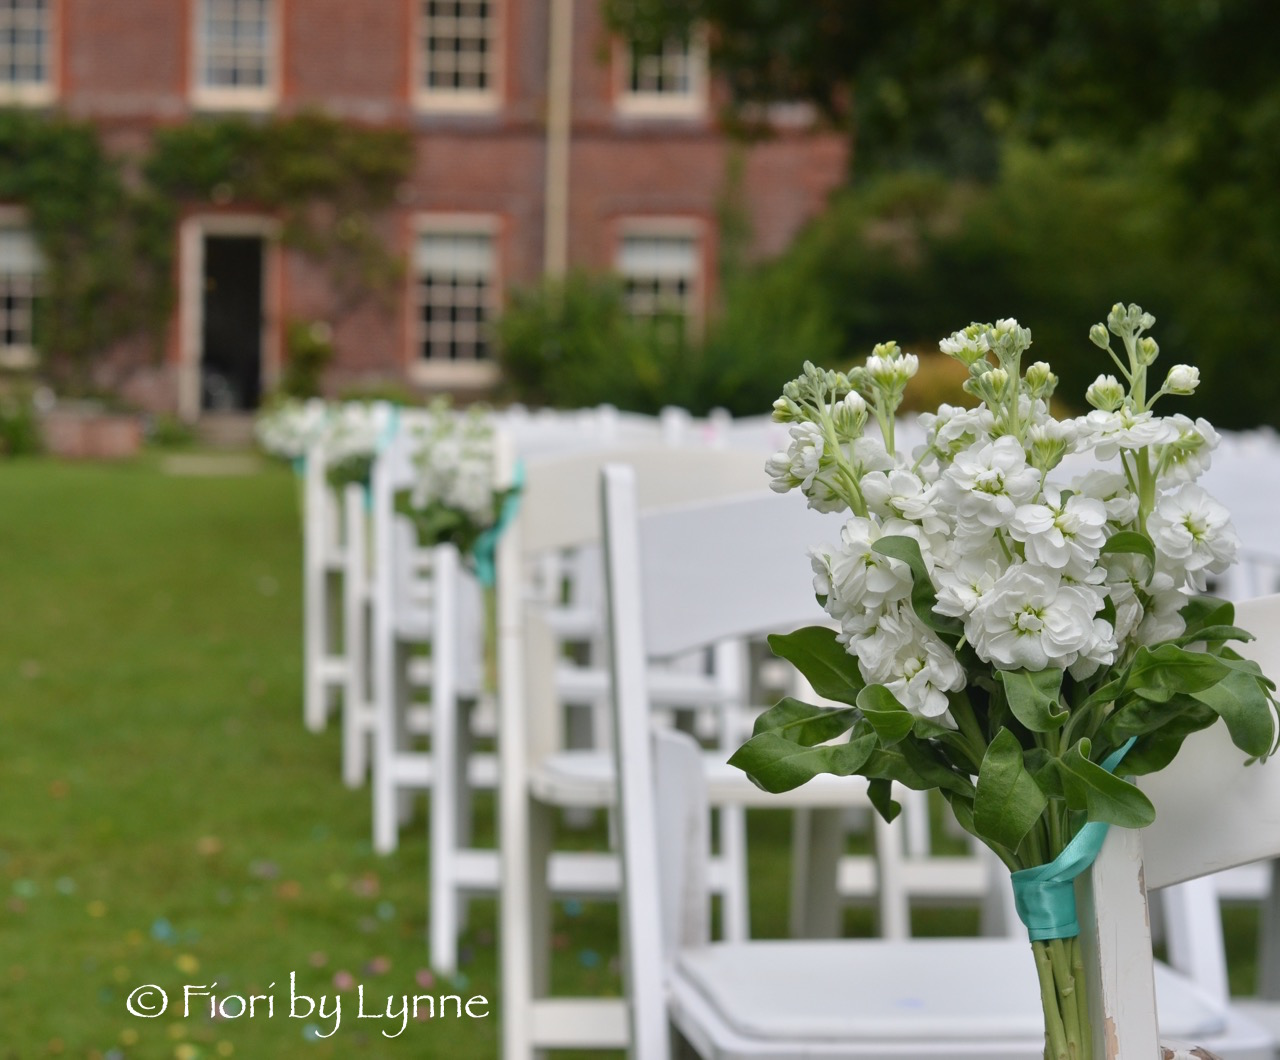 lainston_pavilion-wedding-chair-flowers-tied-bunches-stocks.jpg